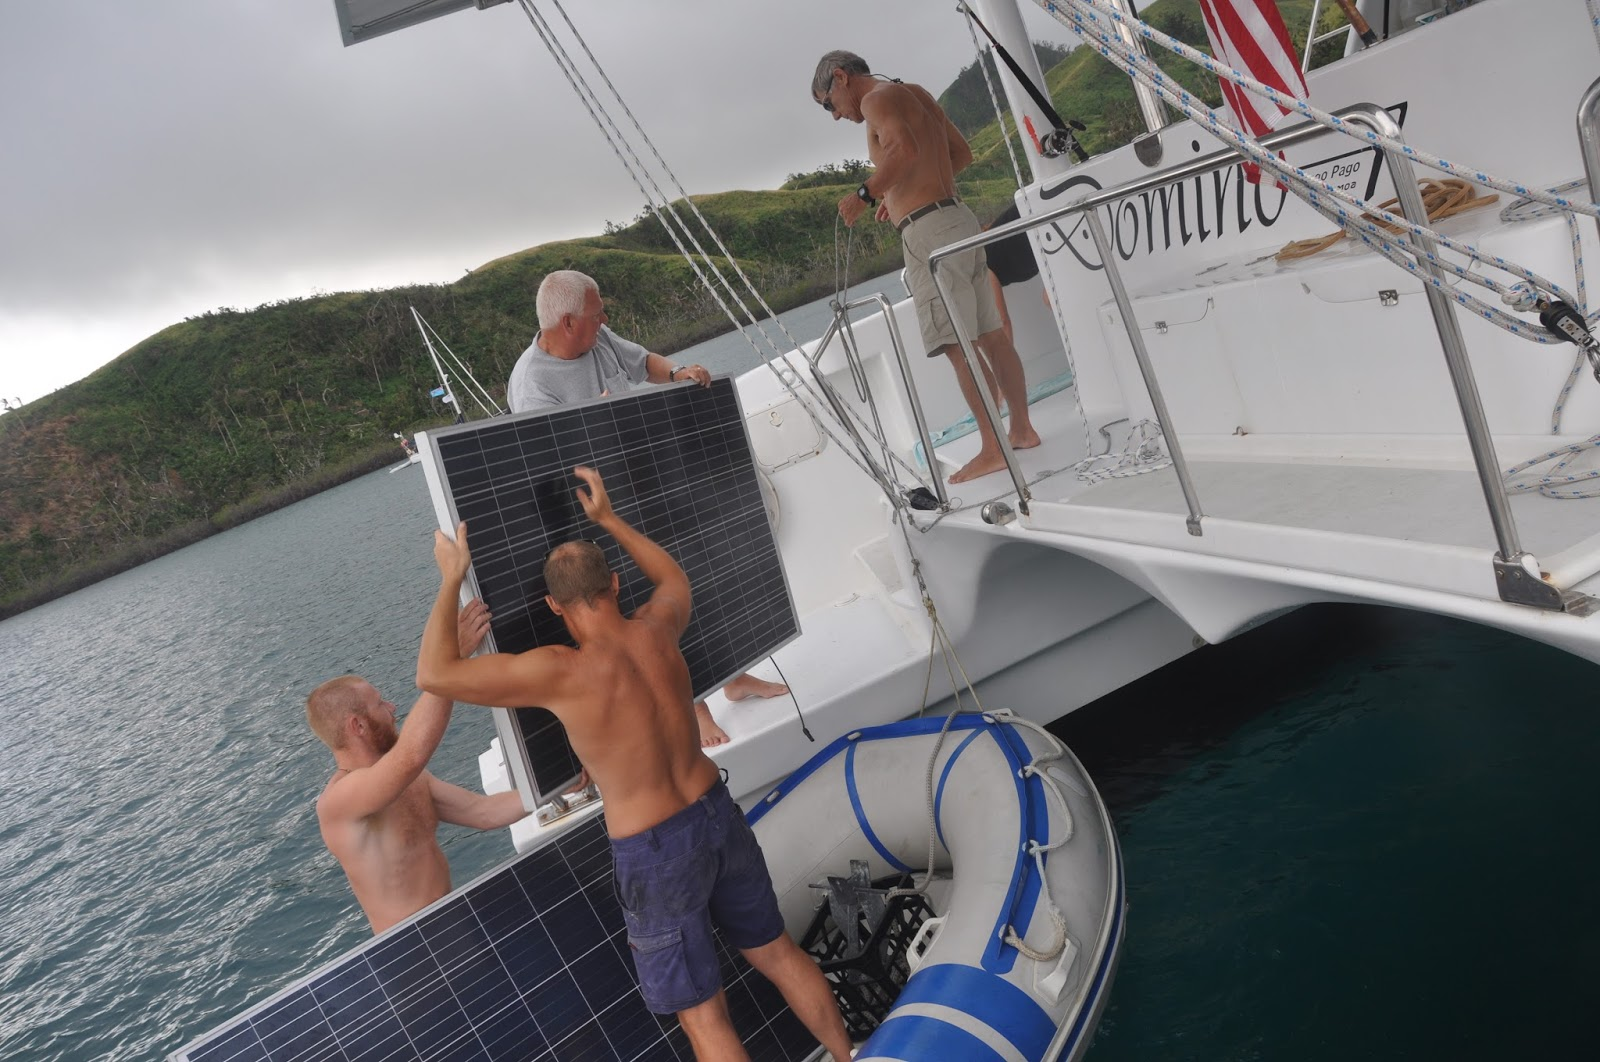 Domino Power Catamaran For Sale On Trawler Blogs